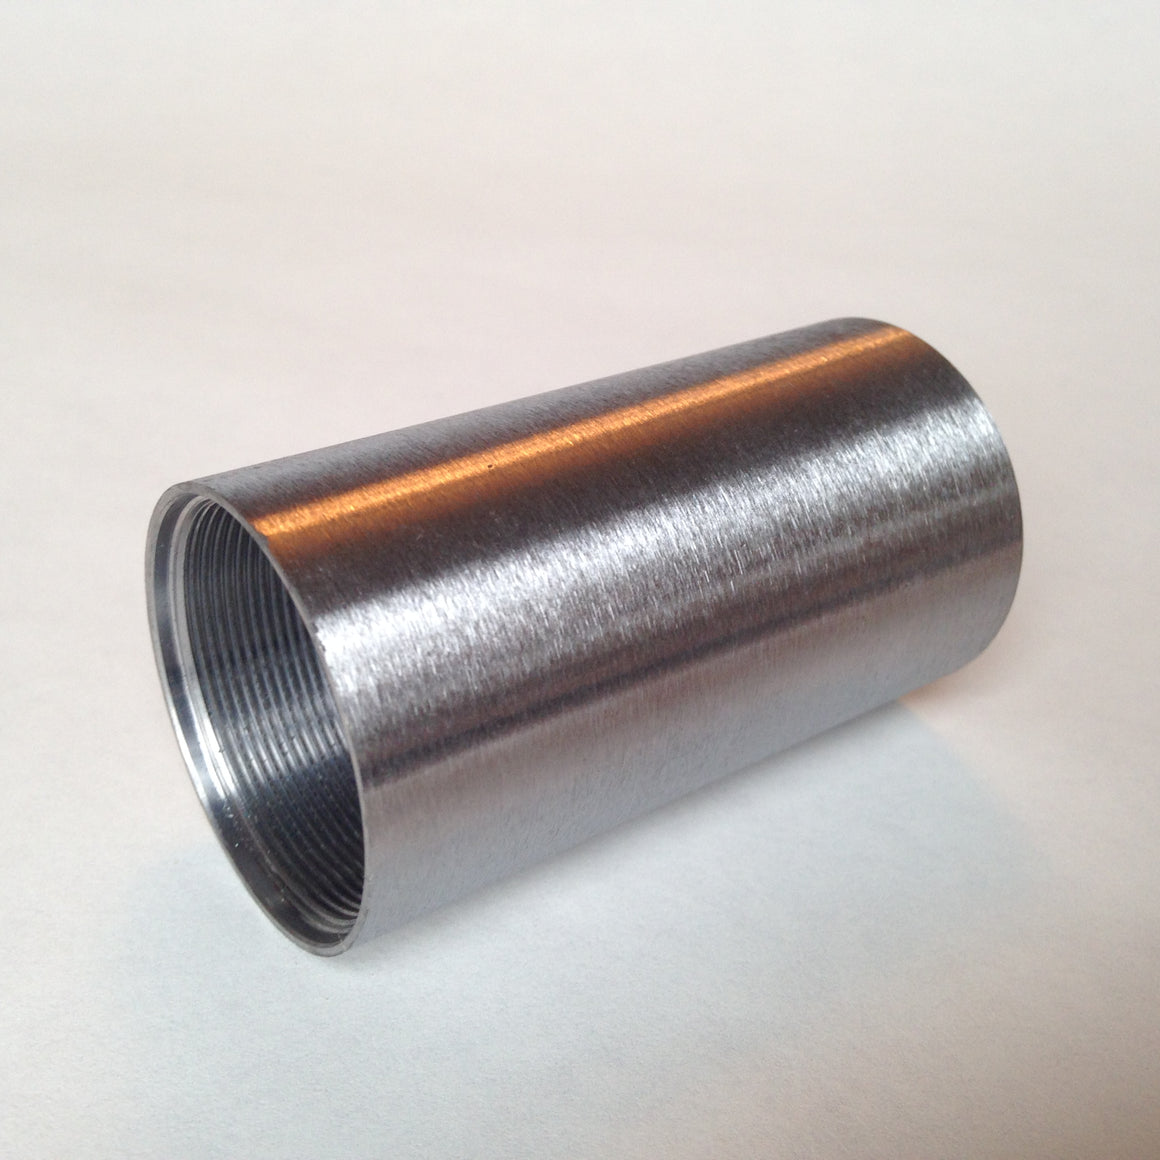 Bottom bracket shells - ISO threaded - 69mm, 74mm, 101mm - 38.1mm OD